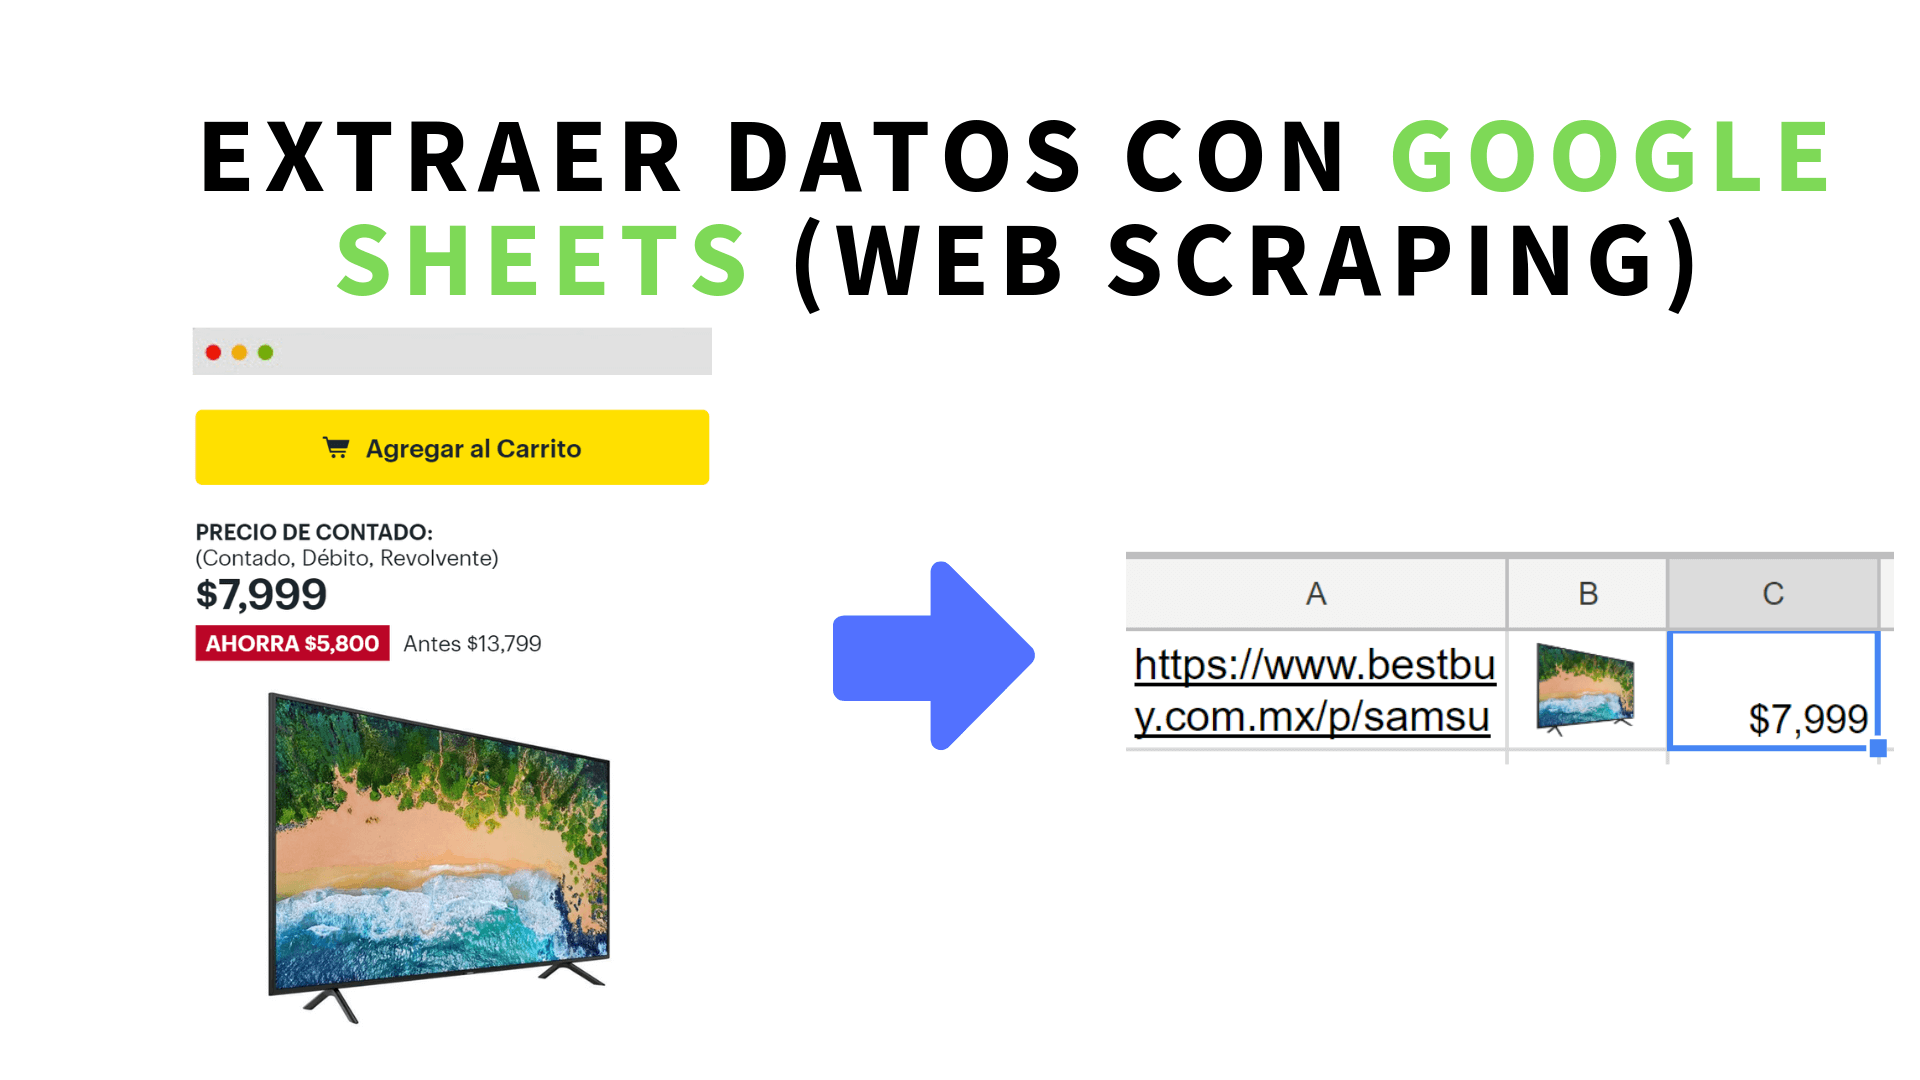 Extraer datos de sitios web con Google Sheets (web scraping)